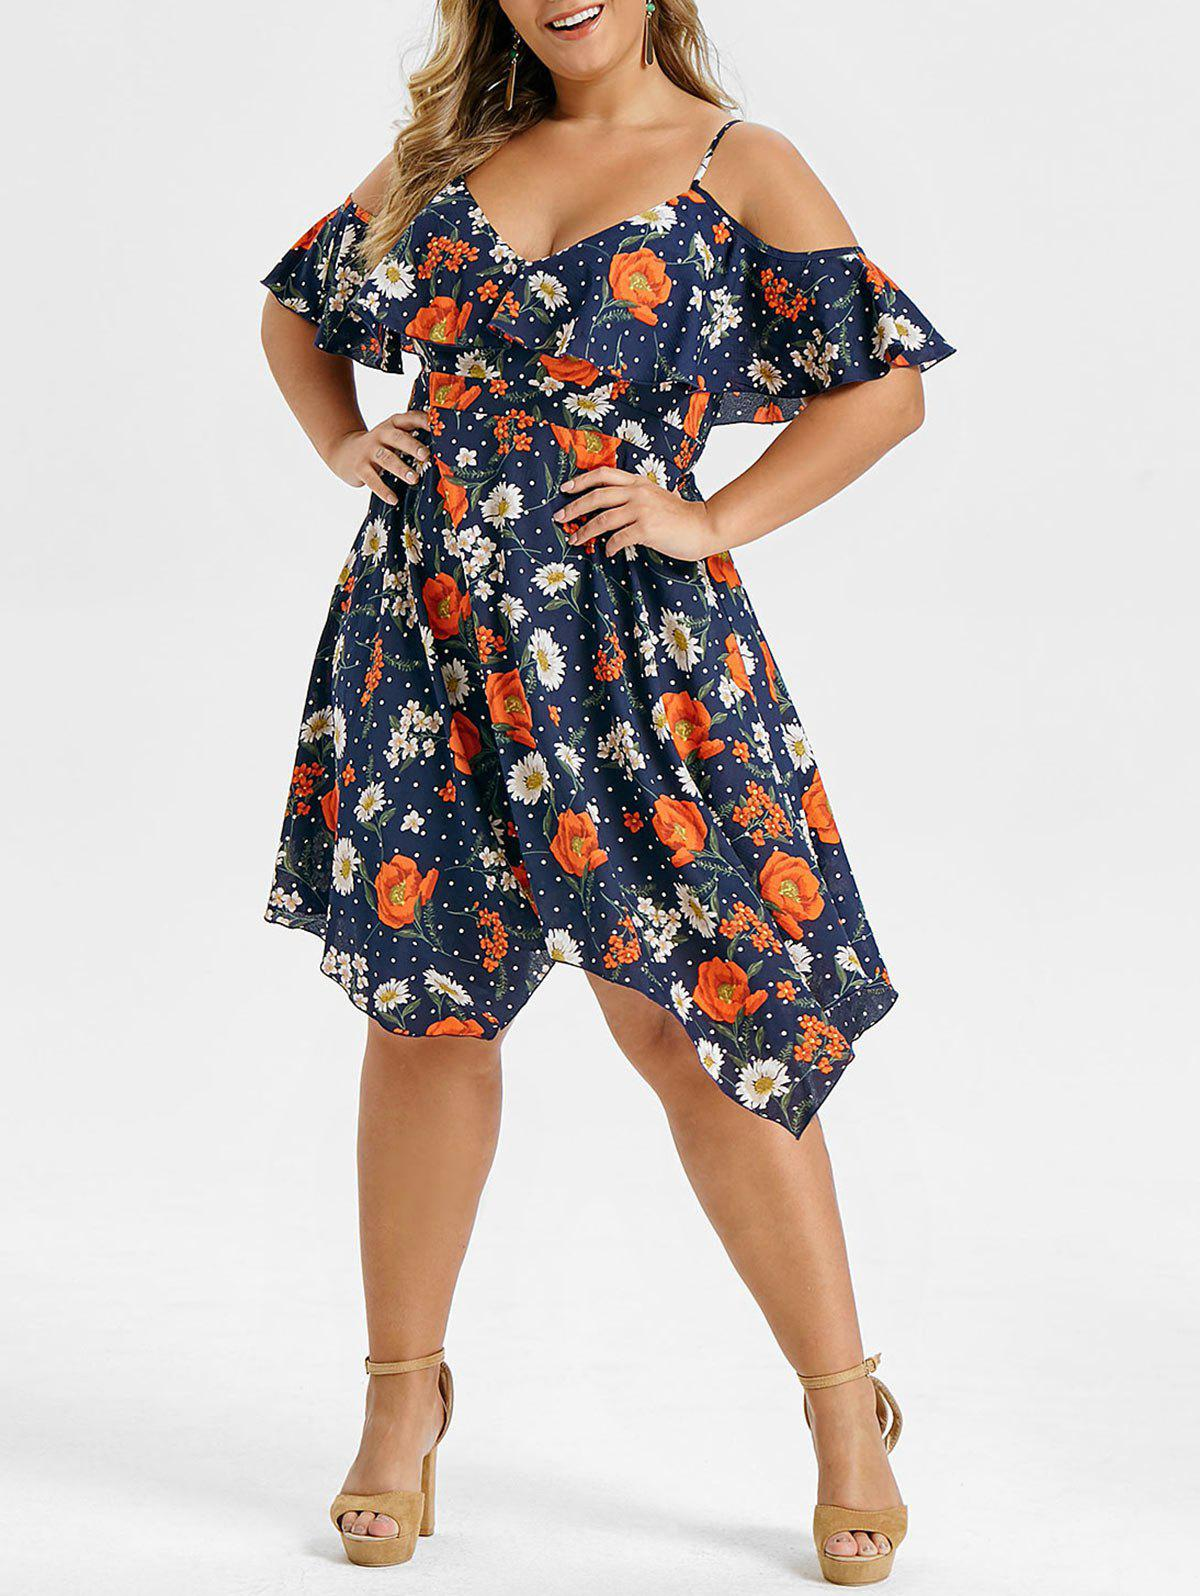 Plus Size Asymmetrical Floral Print Ruffled Dress - CADETBLUE 3X